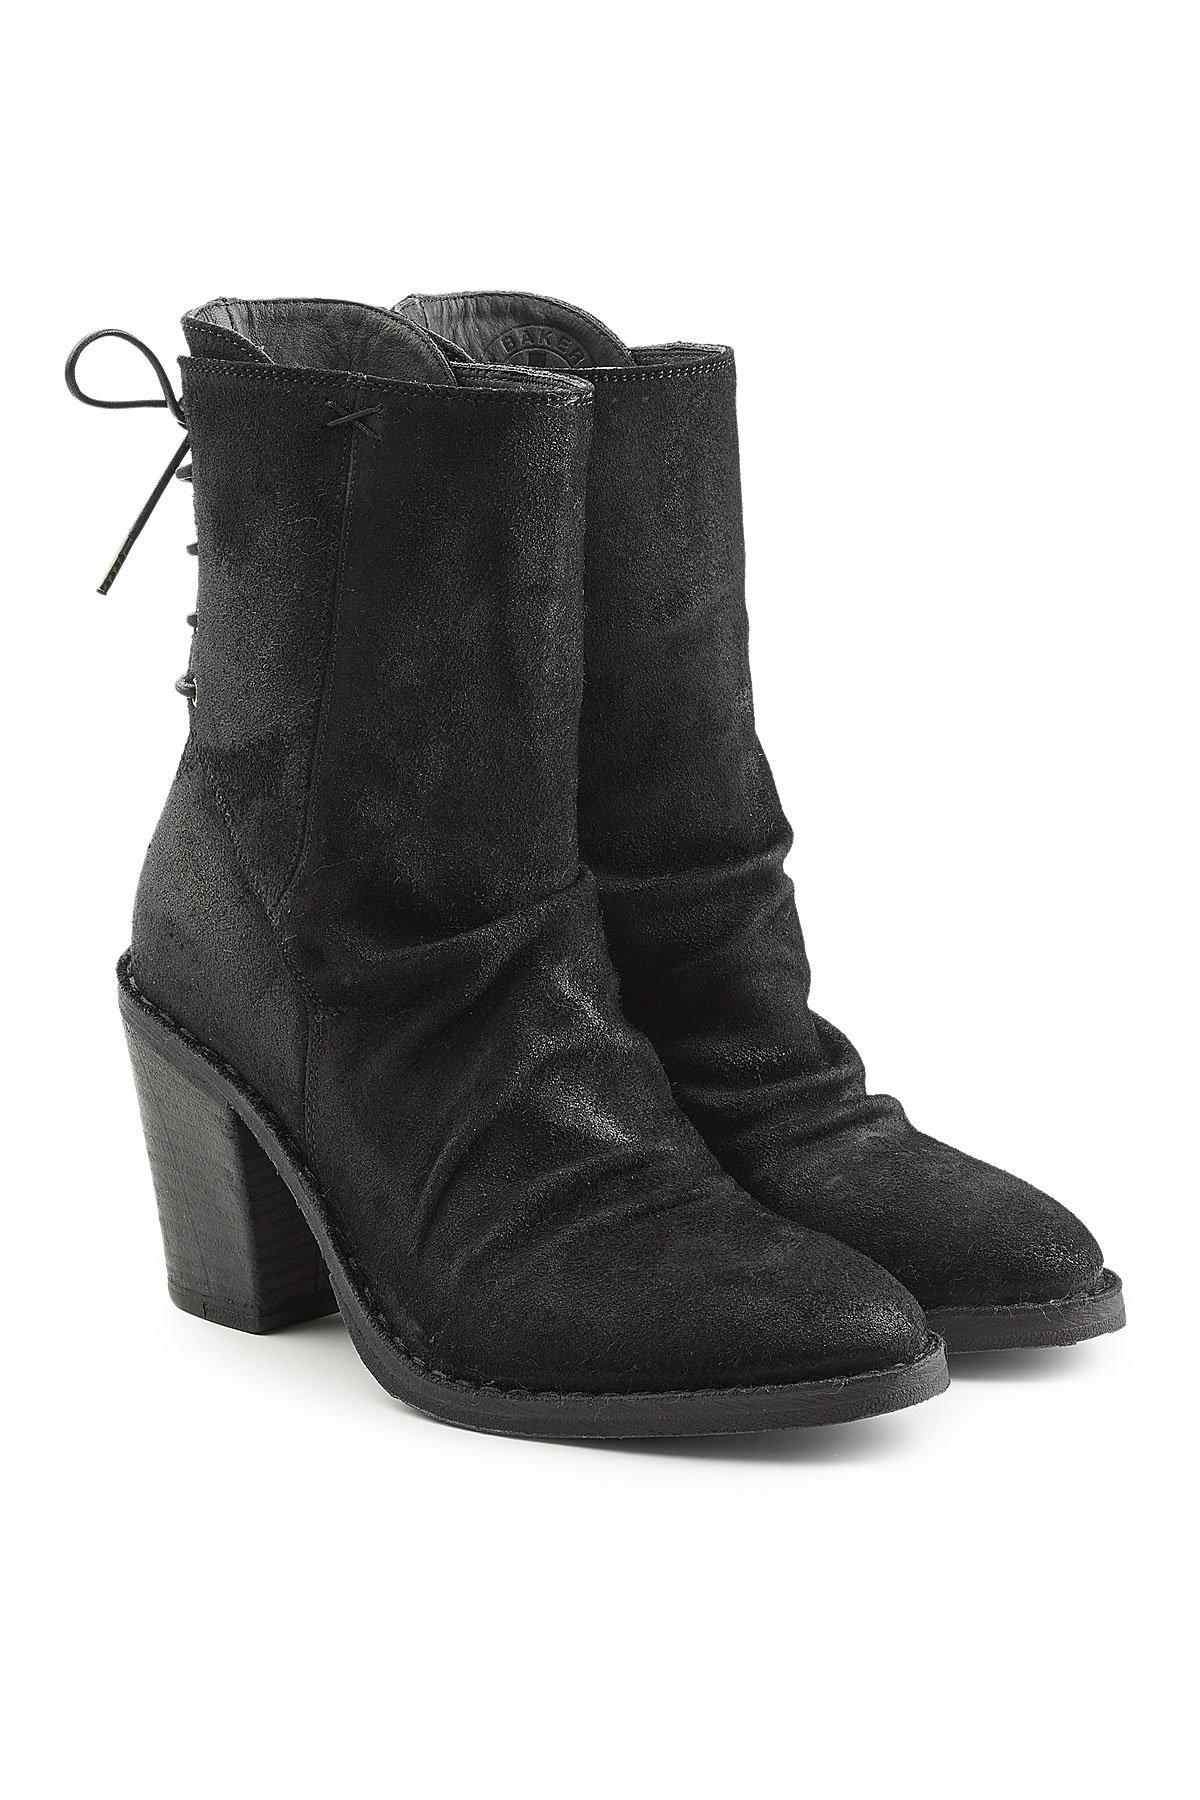 FIORENTINI + BAKER Sassy Suede Ankle Boots with Lace-Up Back Free Shipping Pre Order For Sale Online dfGqTx